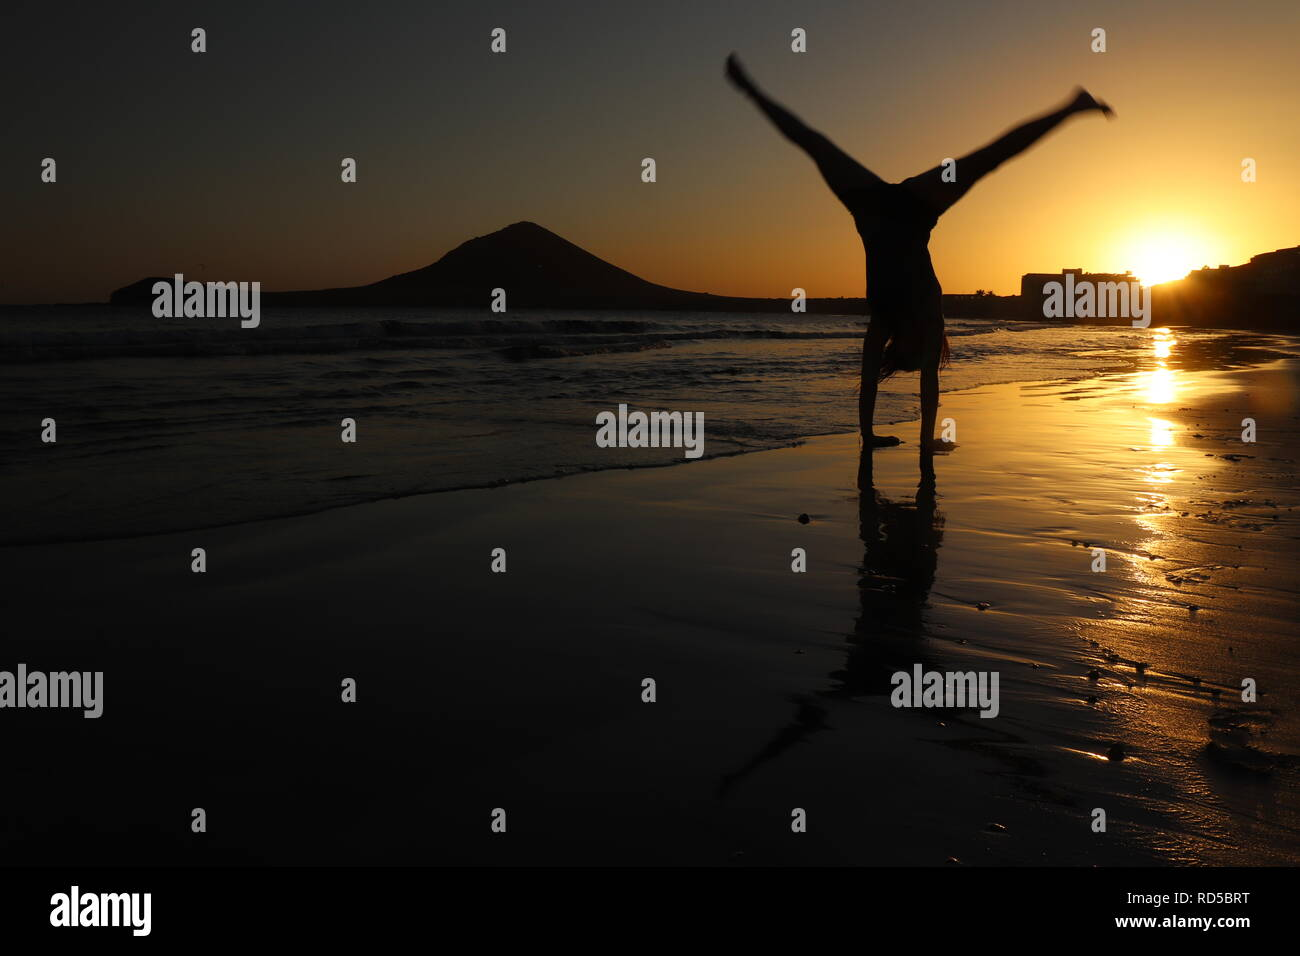 Girl doing a cartwheel on the beach at sunset - Stock Image